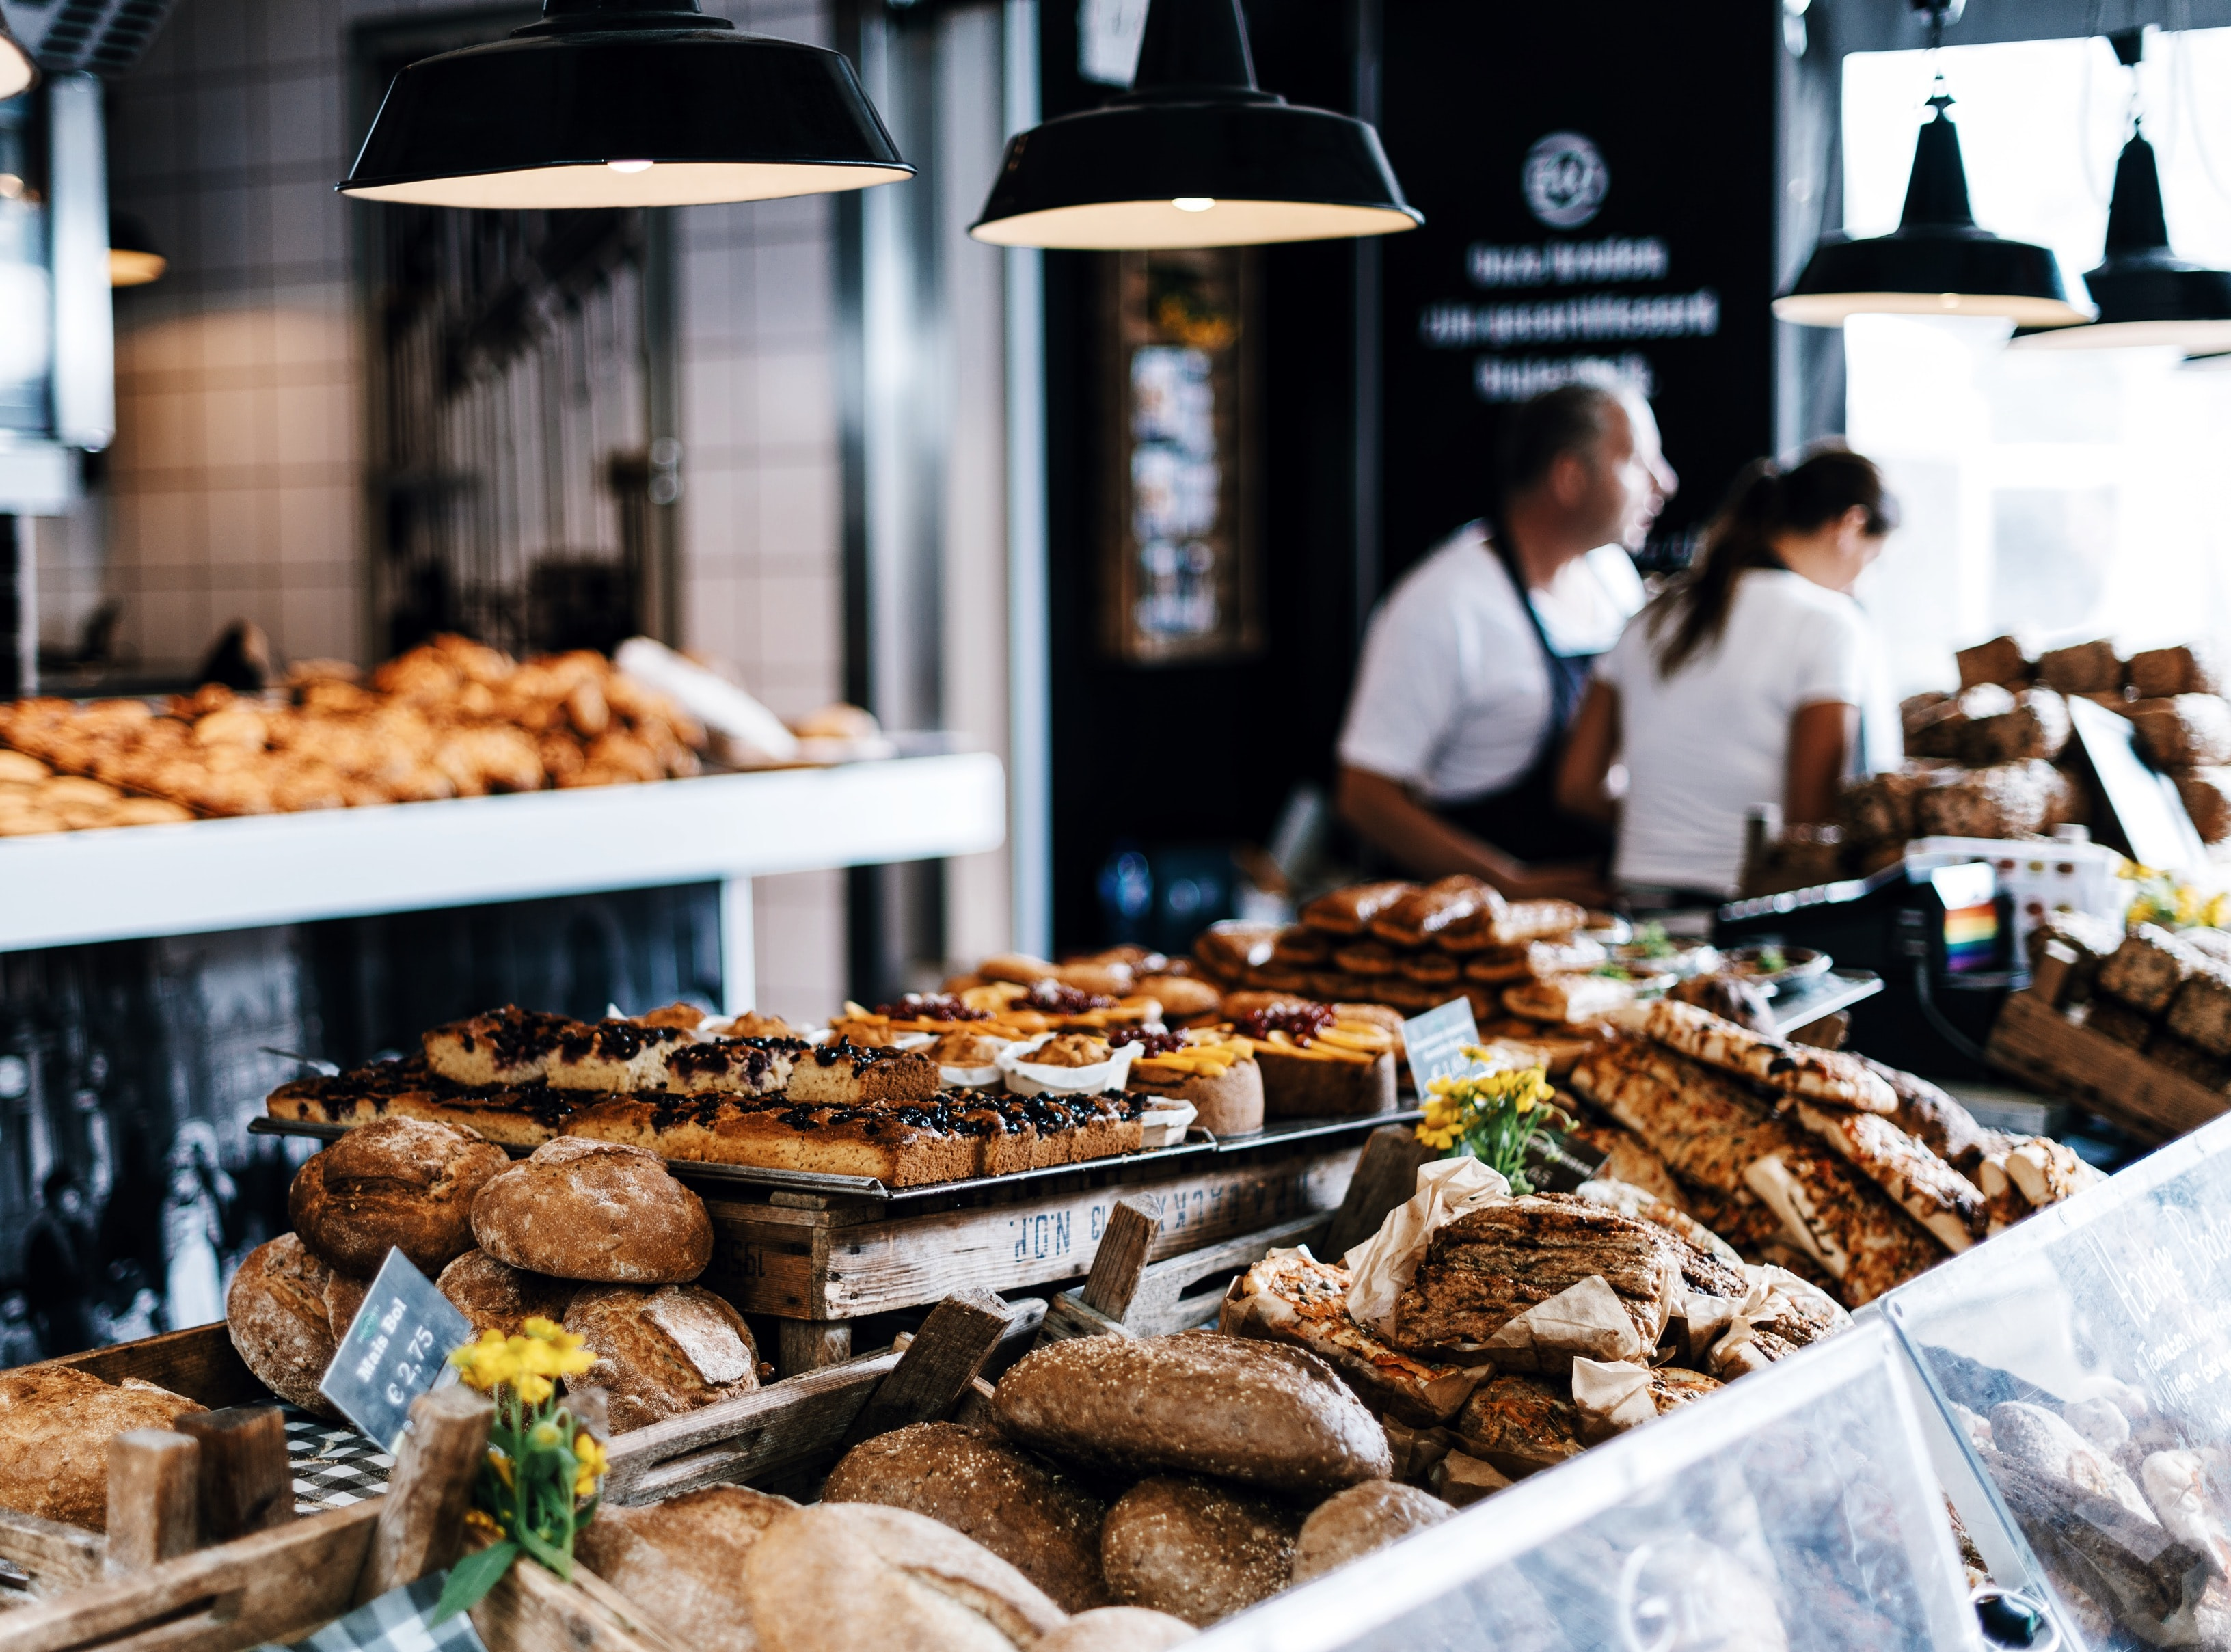 Bread and pastries on a display in a bakery